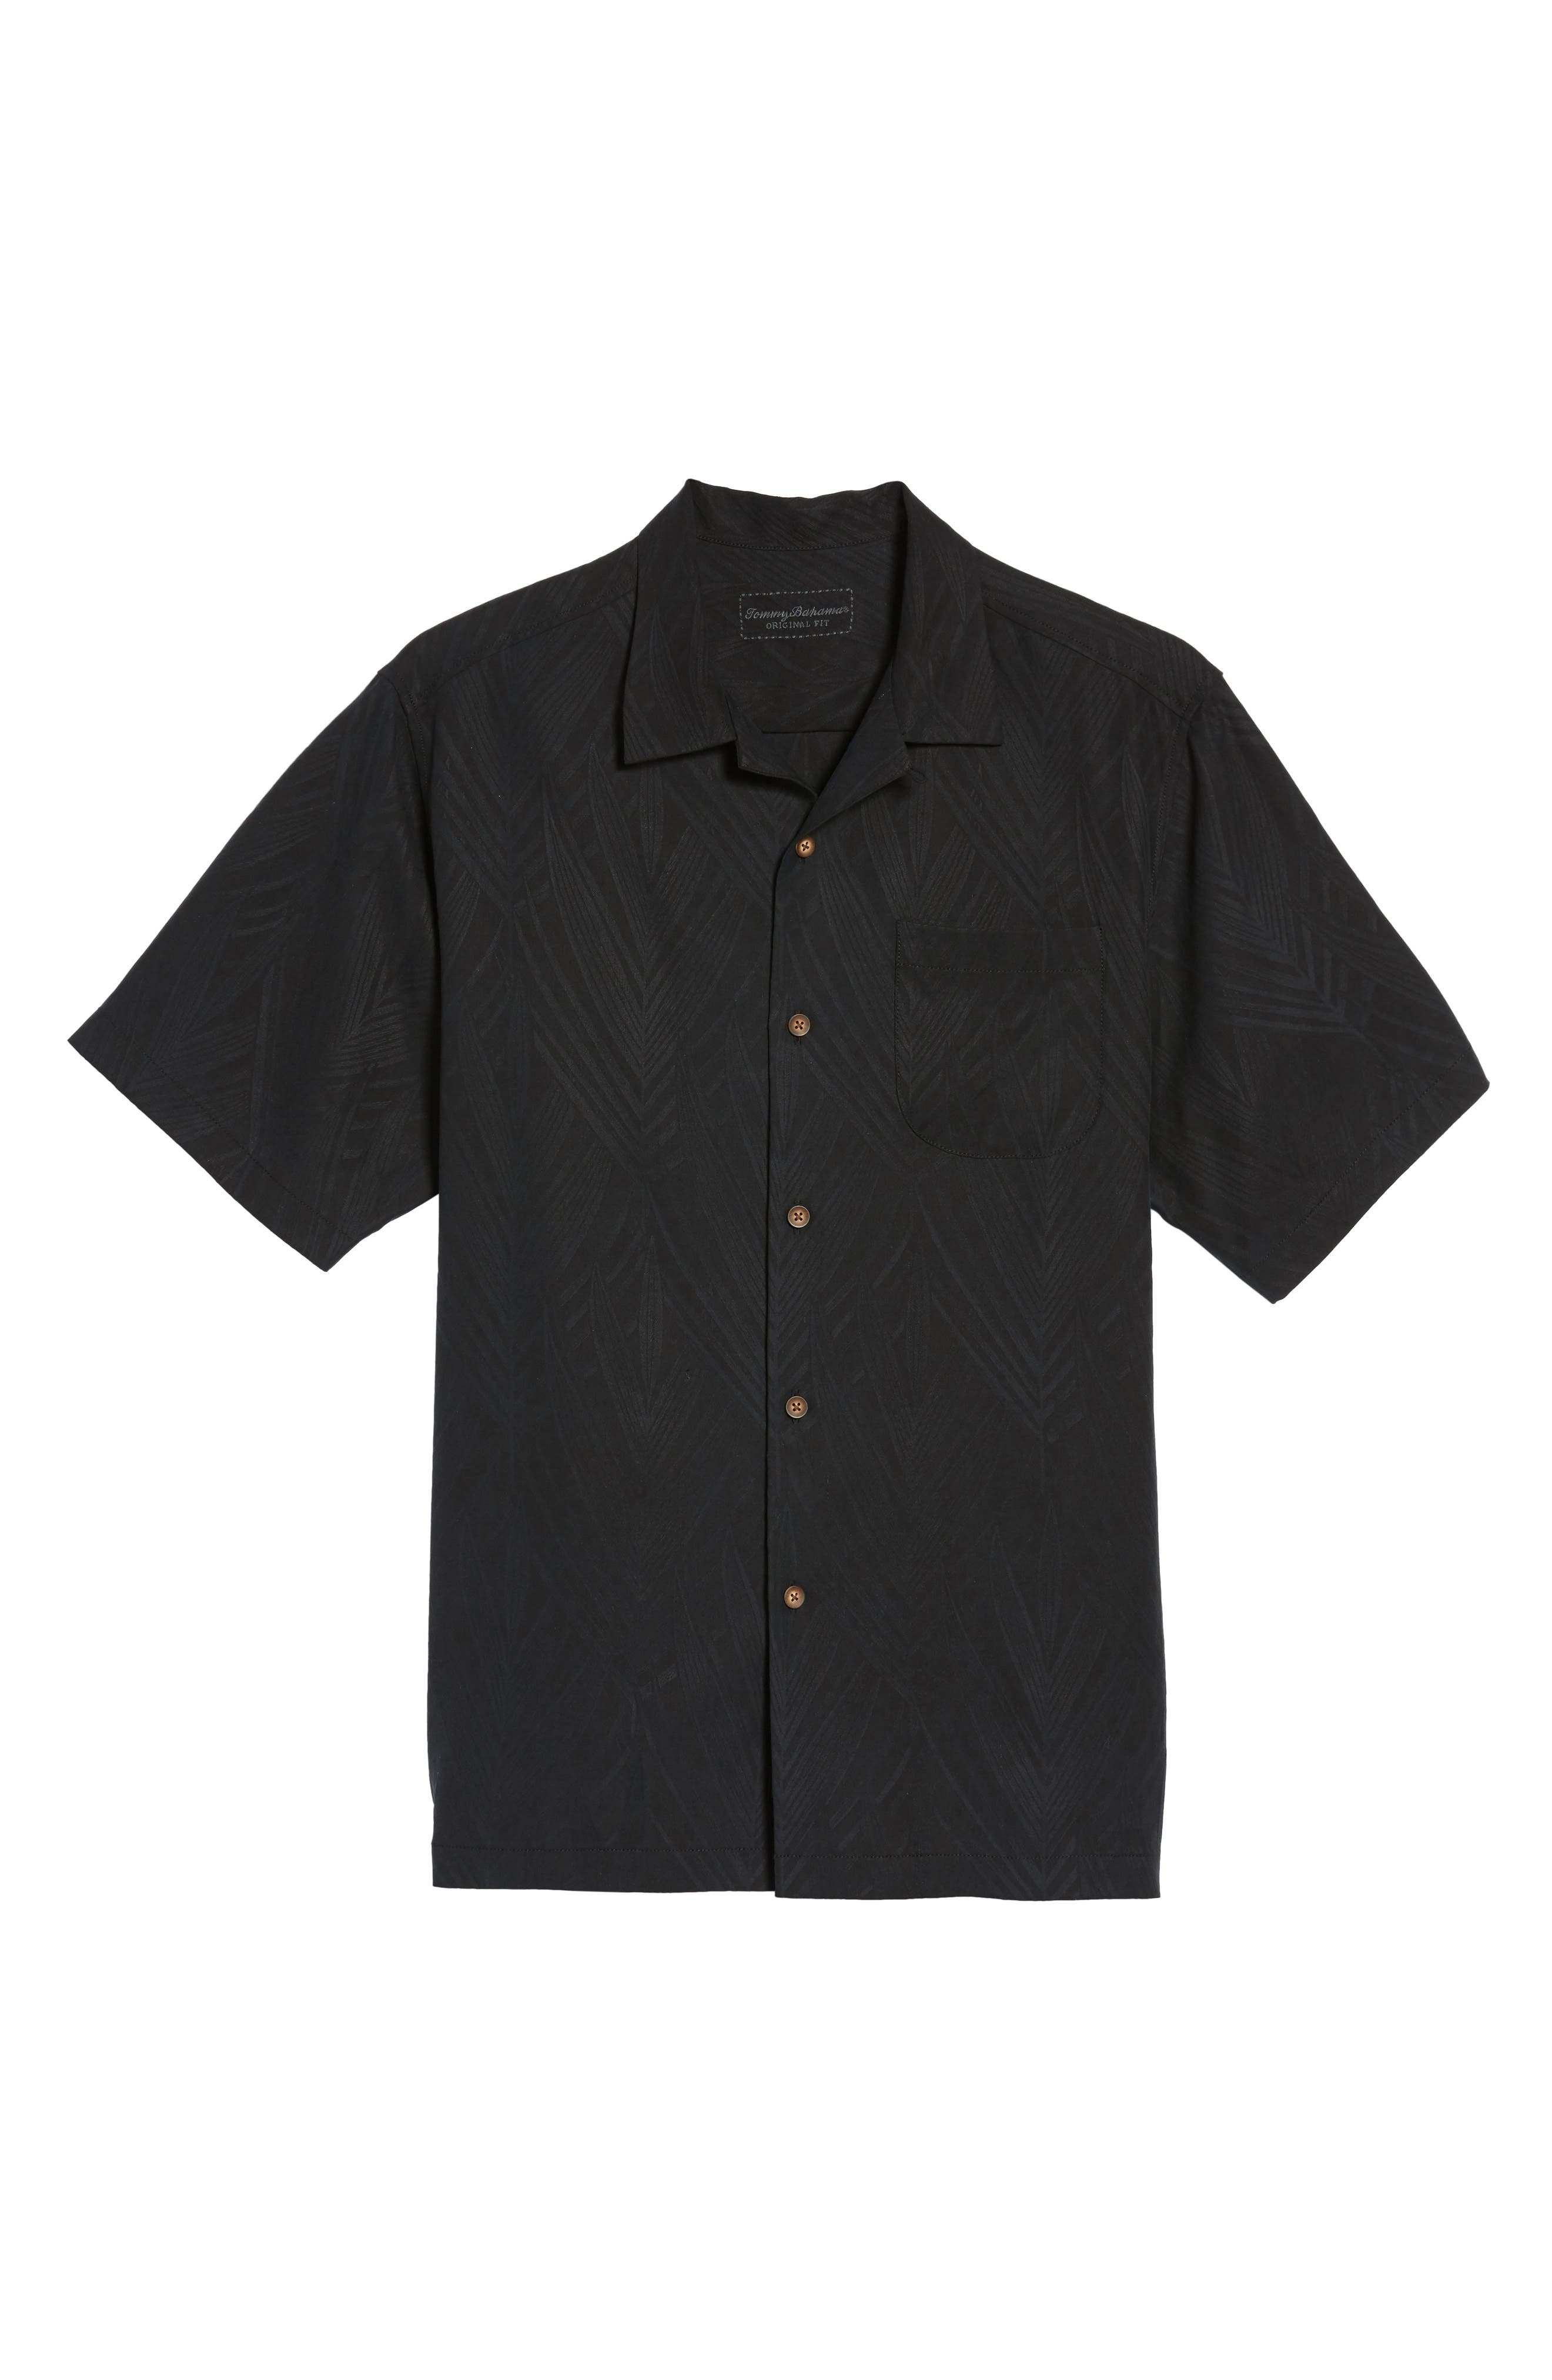 Local Watering Hole Embroidered Silk Camp Shirt,                             Alternate thumbnail 6, color,                             Black